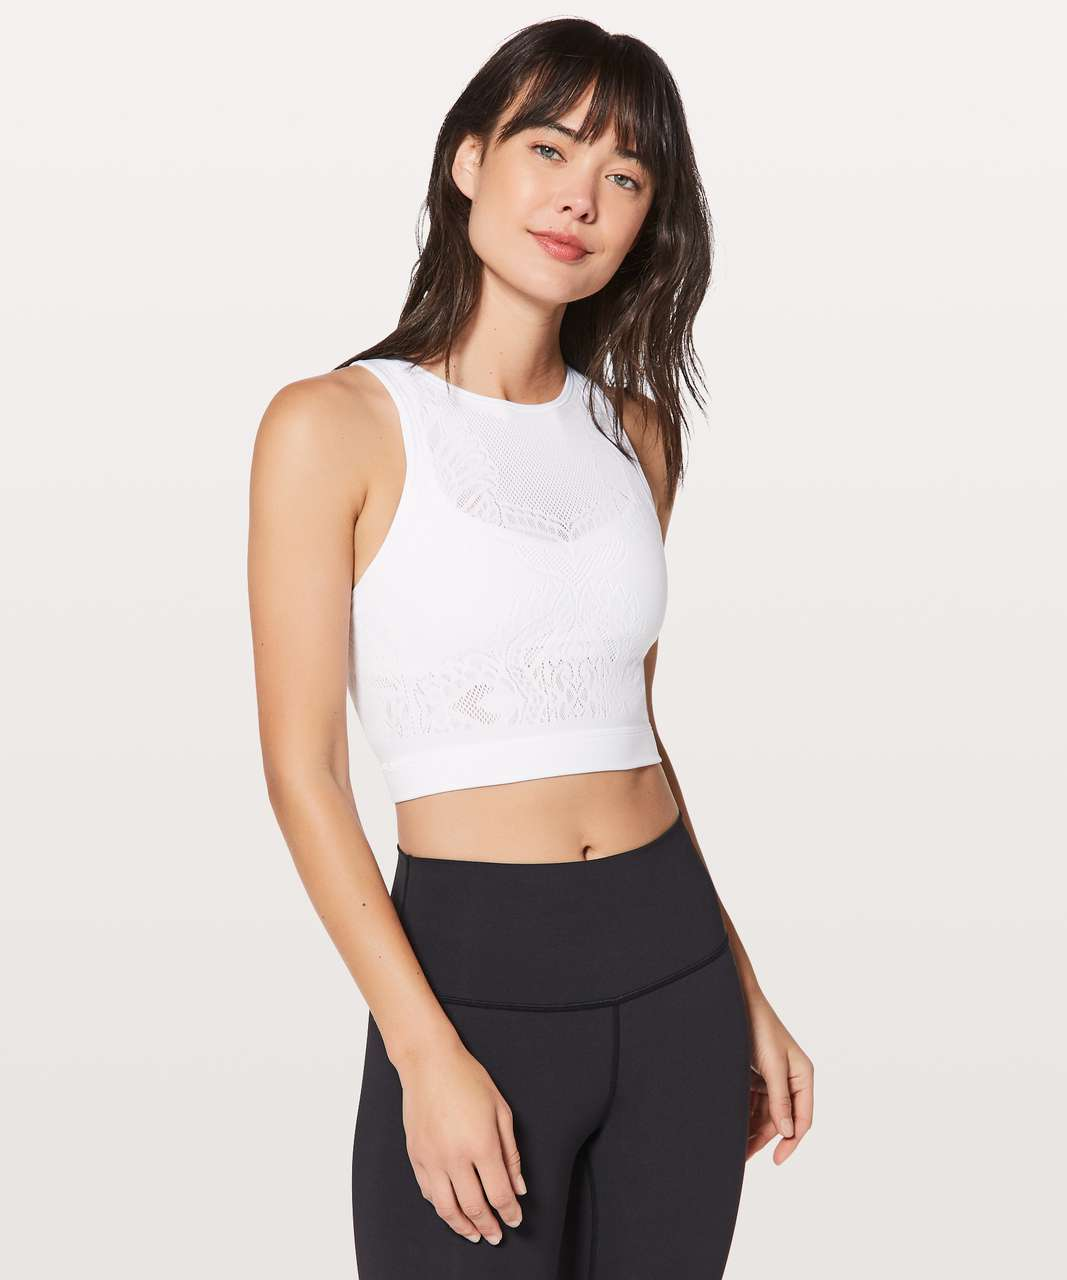 Lululemon Reveal Crop Top *Lattice Paisley - White